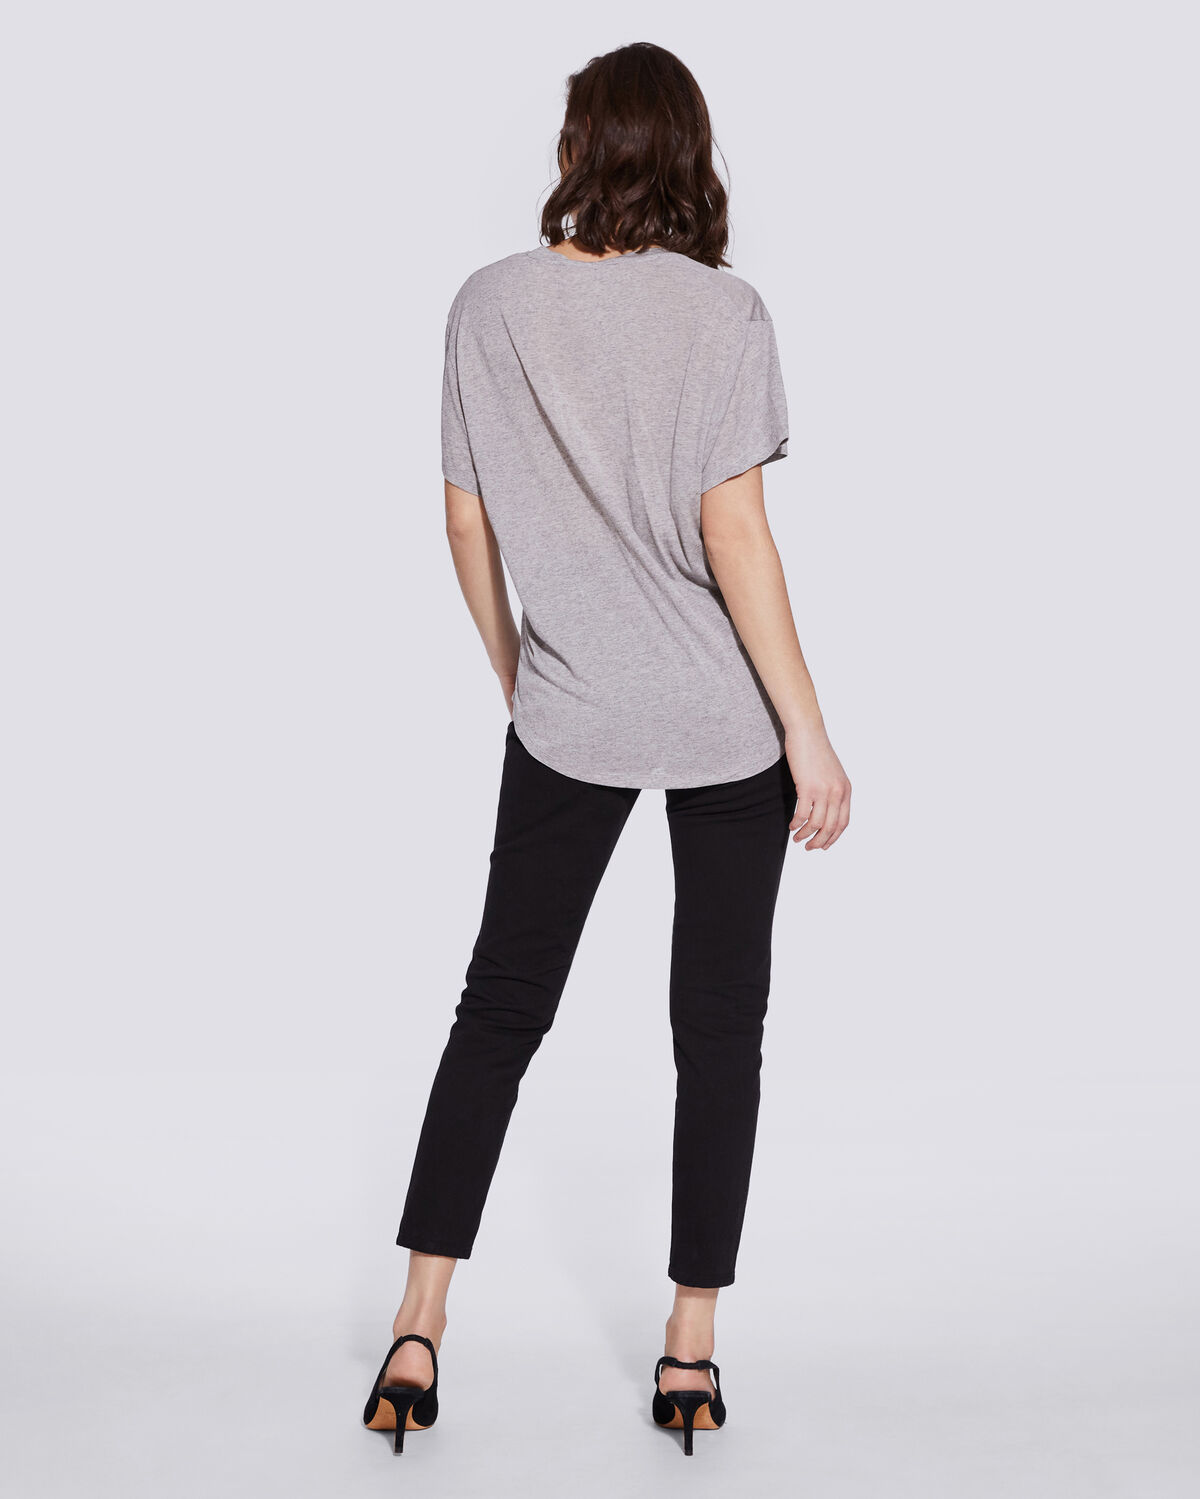 IRO - T-SHIRT DÉCOLLETÉ GRIS CHINÉ RAMAZA MIXED GREY